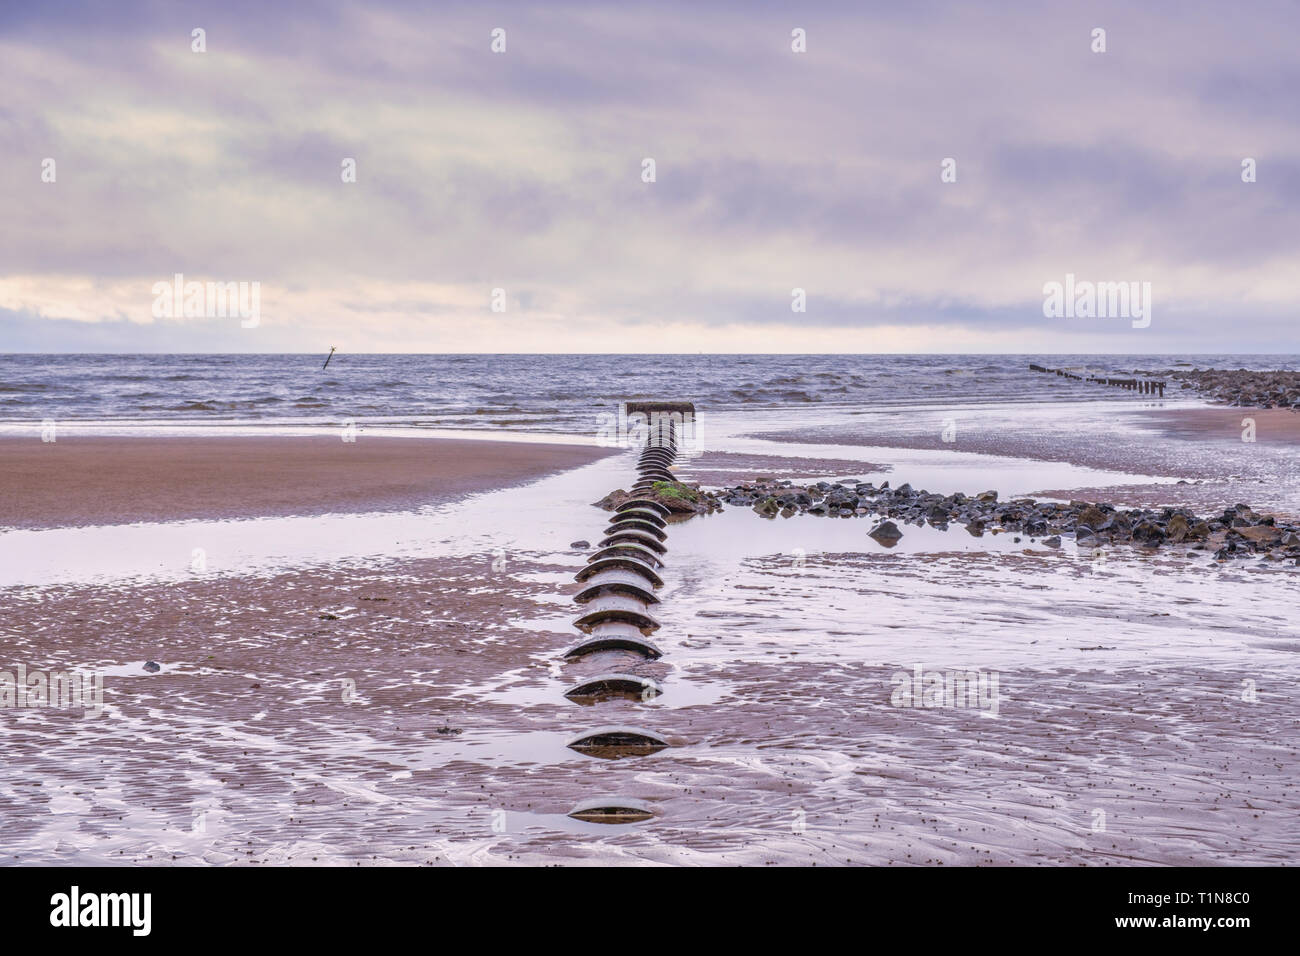 Irvine Harbour Beach Park North Ayrshire Scotland on a bright but cold March Day with an ancient partially buried sewer pipe leading out to sea. - Stock Image